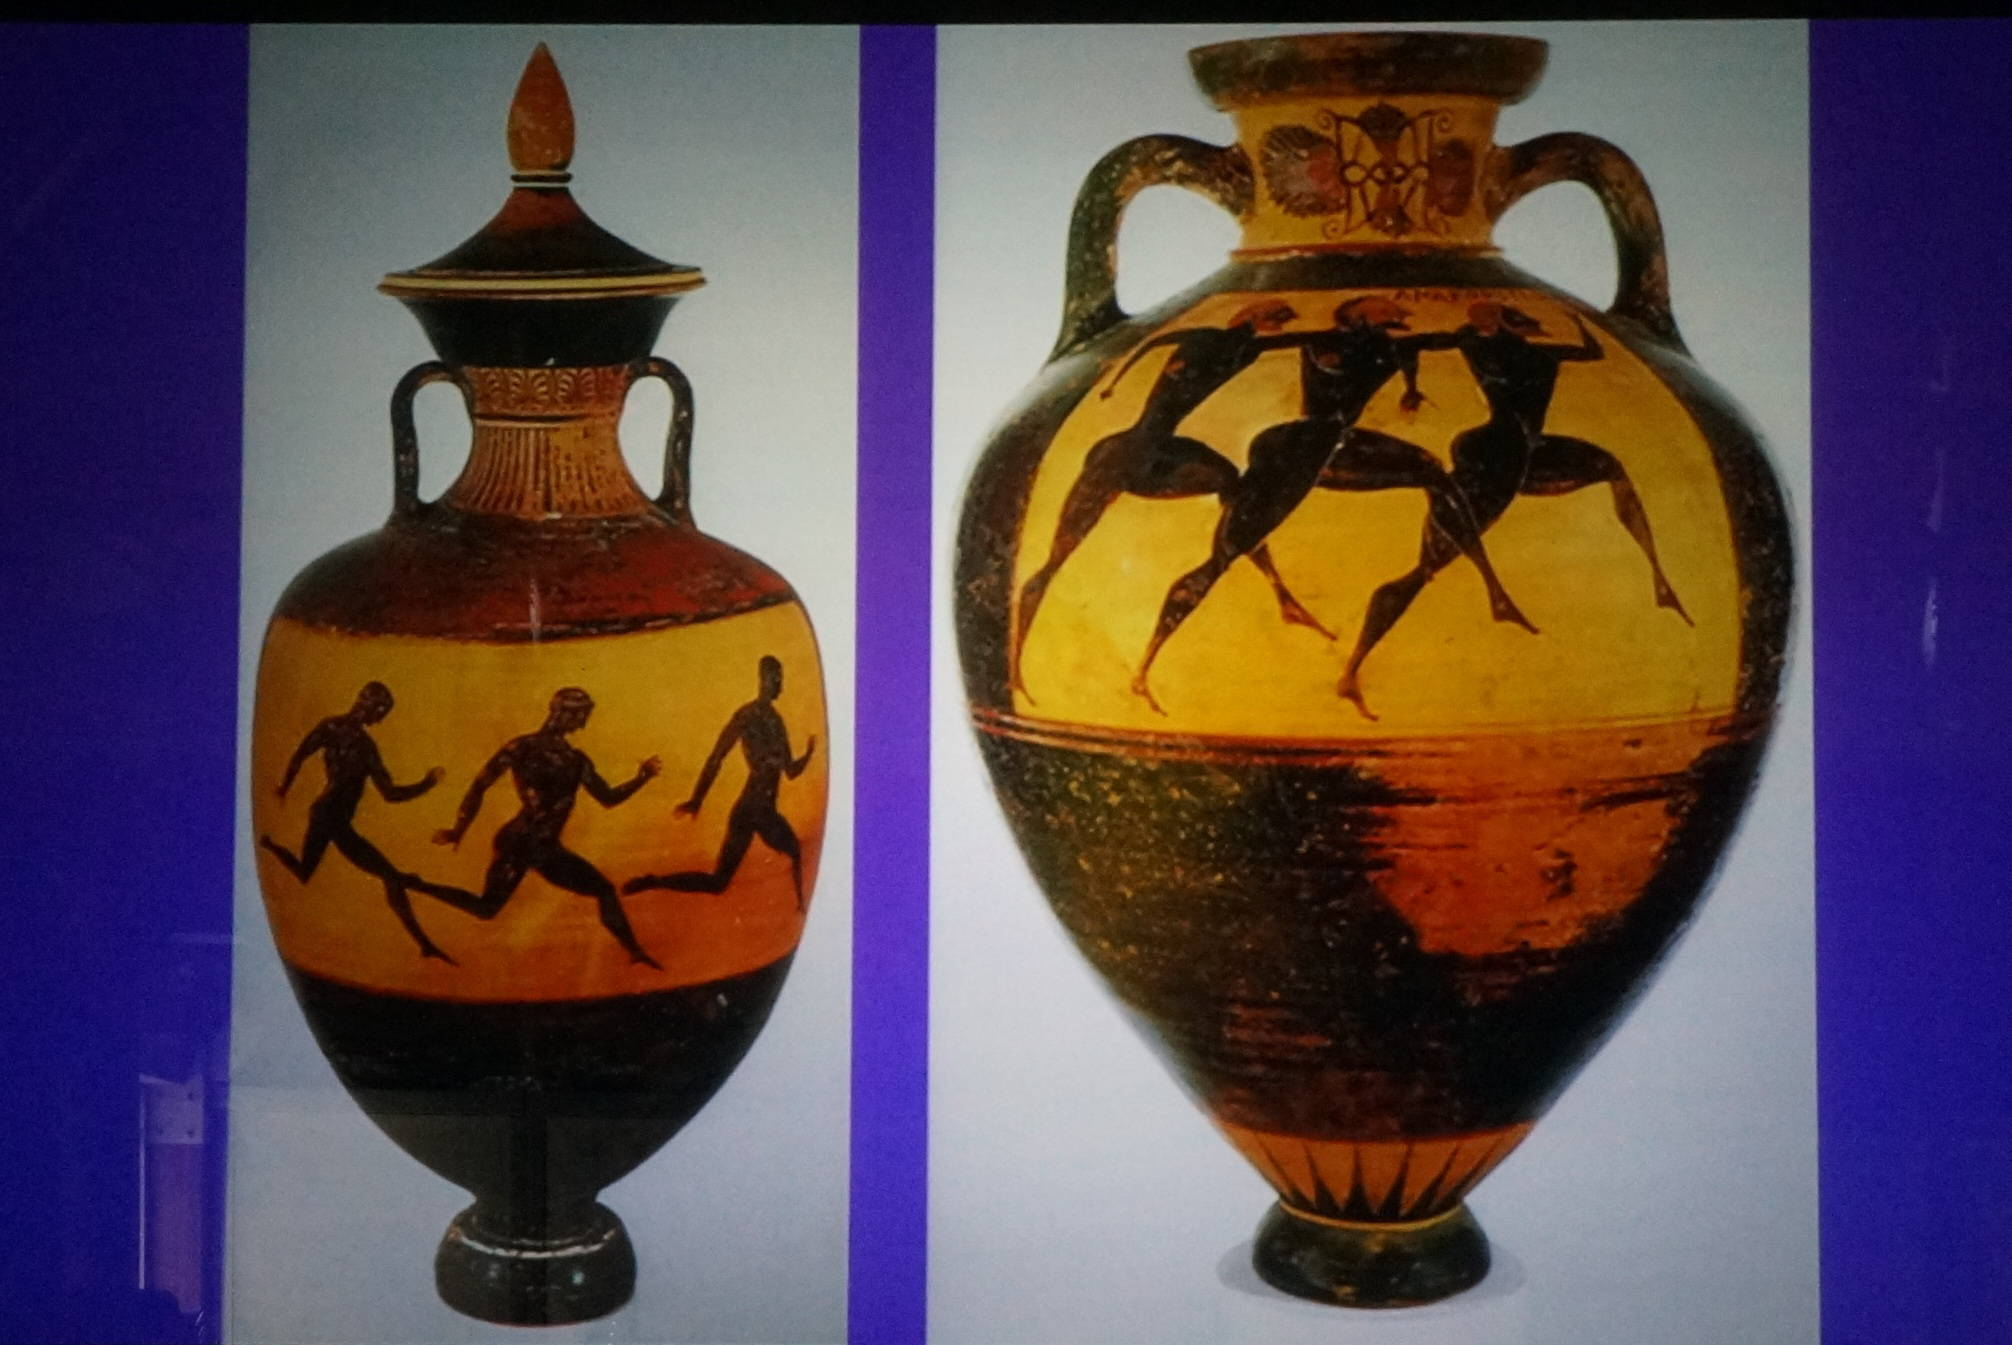 Ancient Olympics Compared to Modern at Montville Library - Montville ...